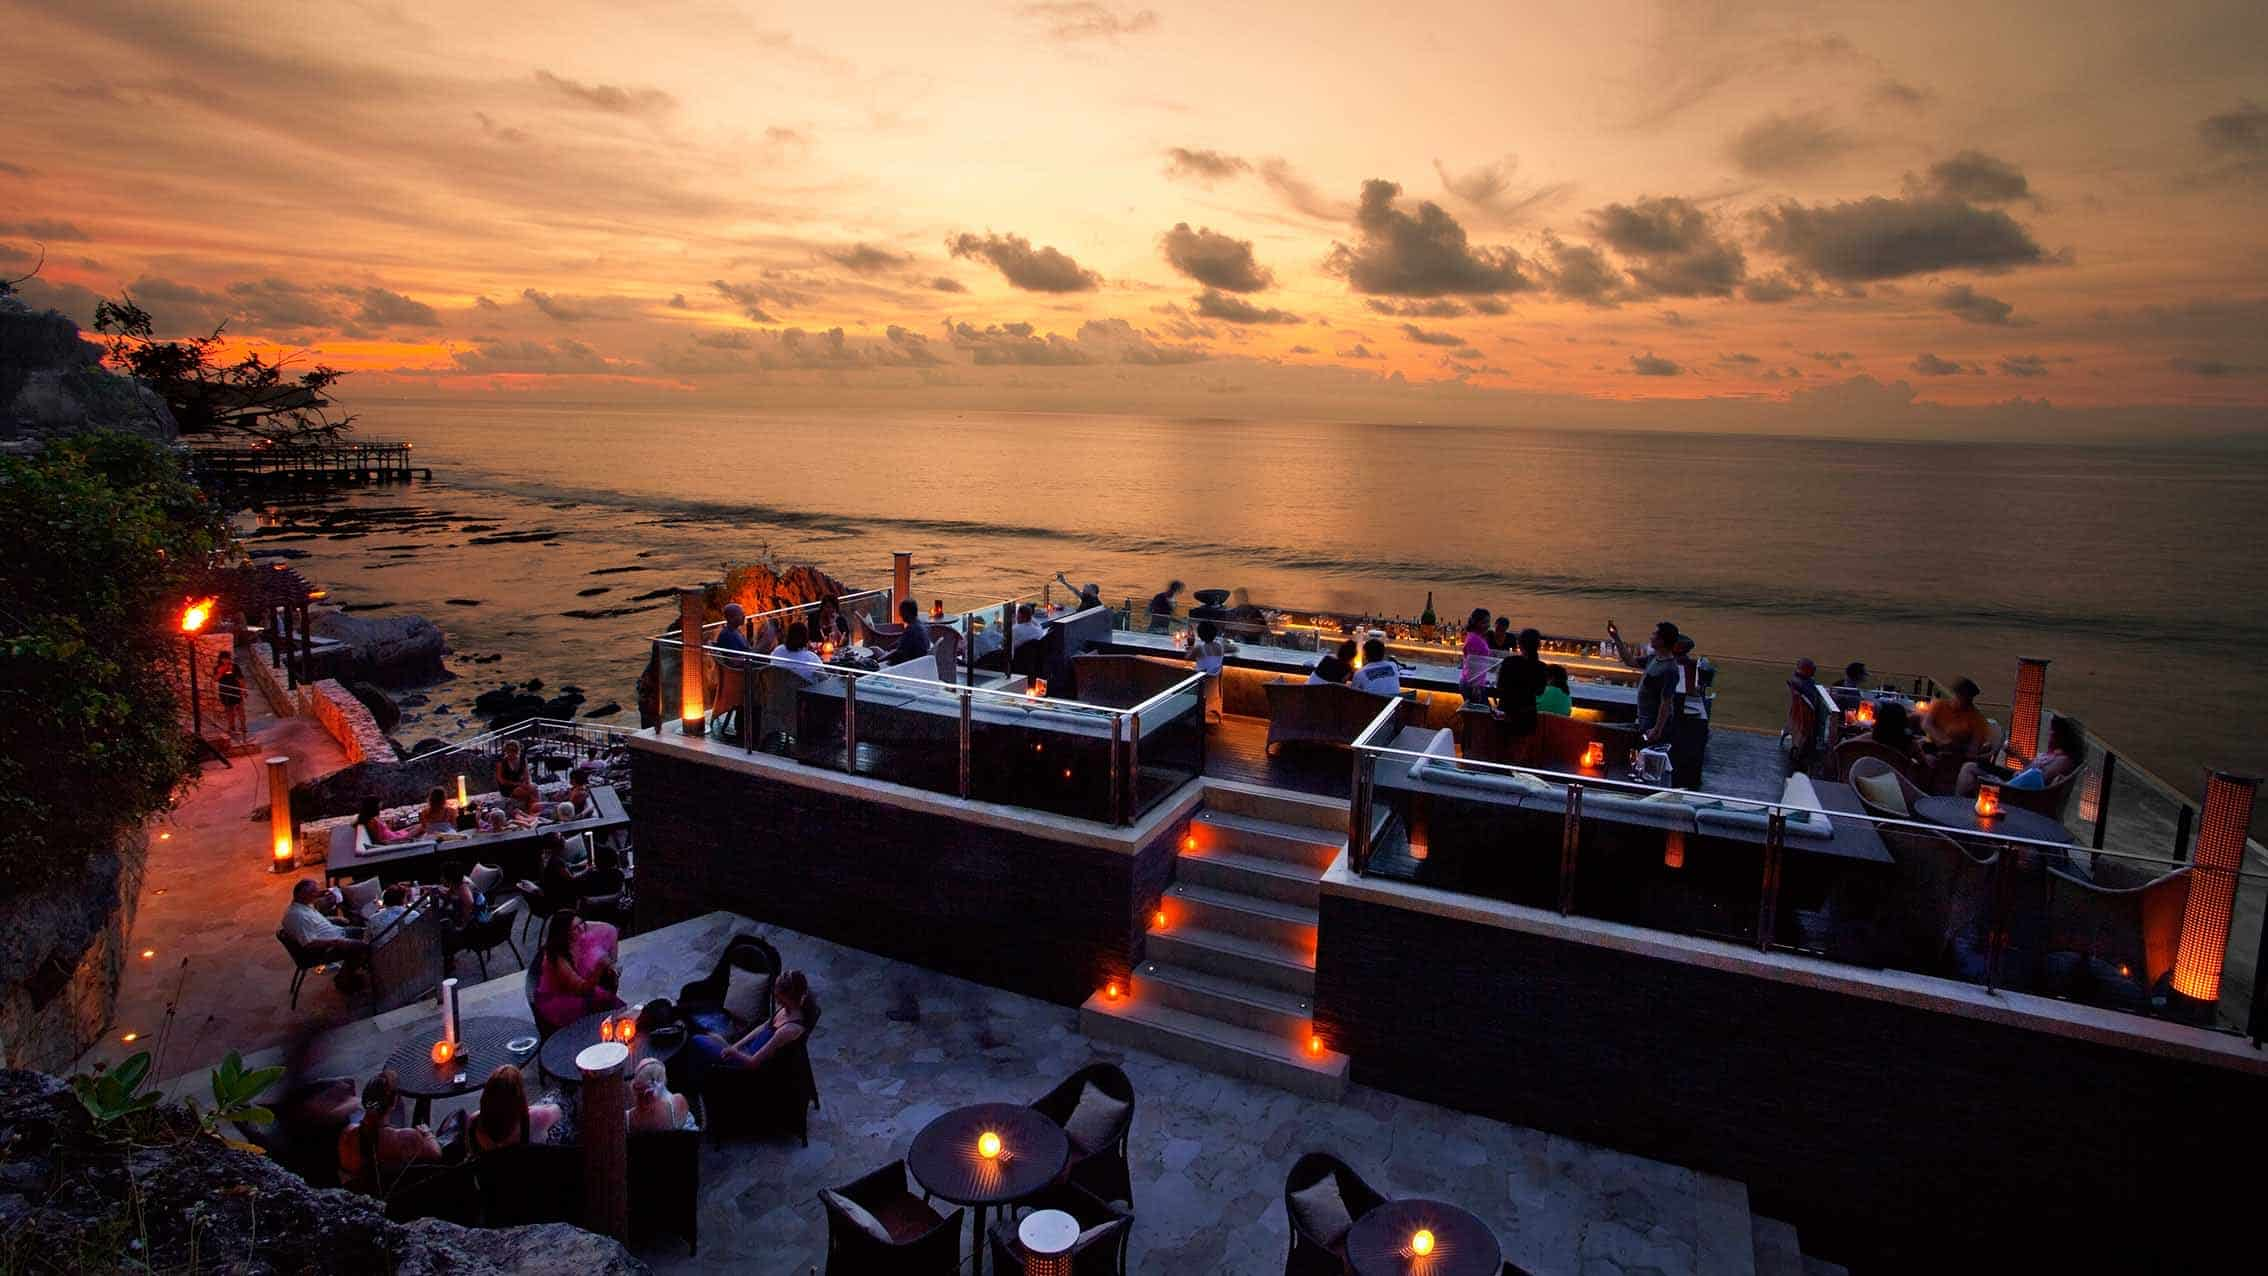 13 Best Bars in Bali You Must Visit - FactsofIndonesia.com